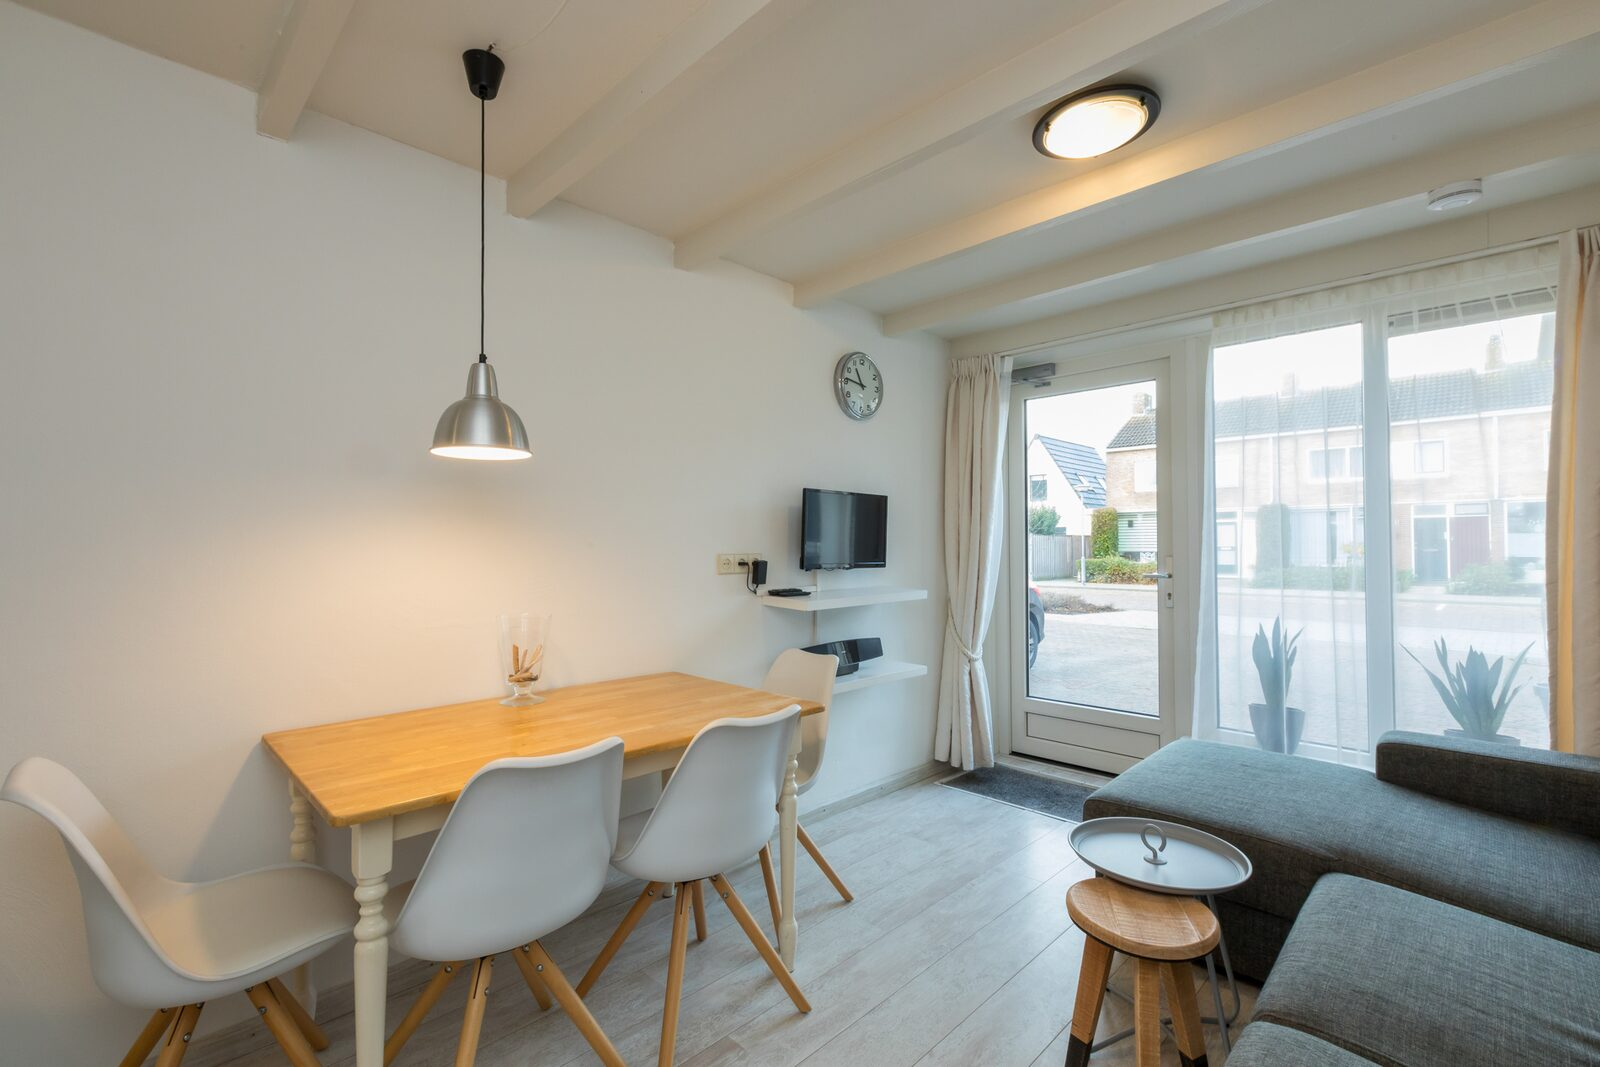 Apartment  - Dr. Vaandragerstraat 5 | Domburg